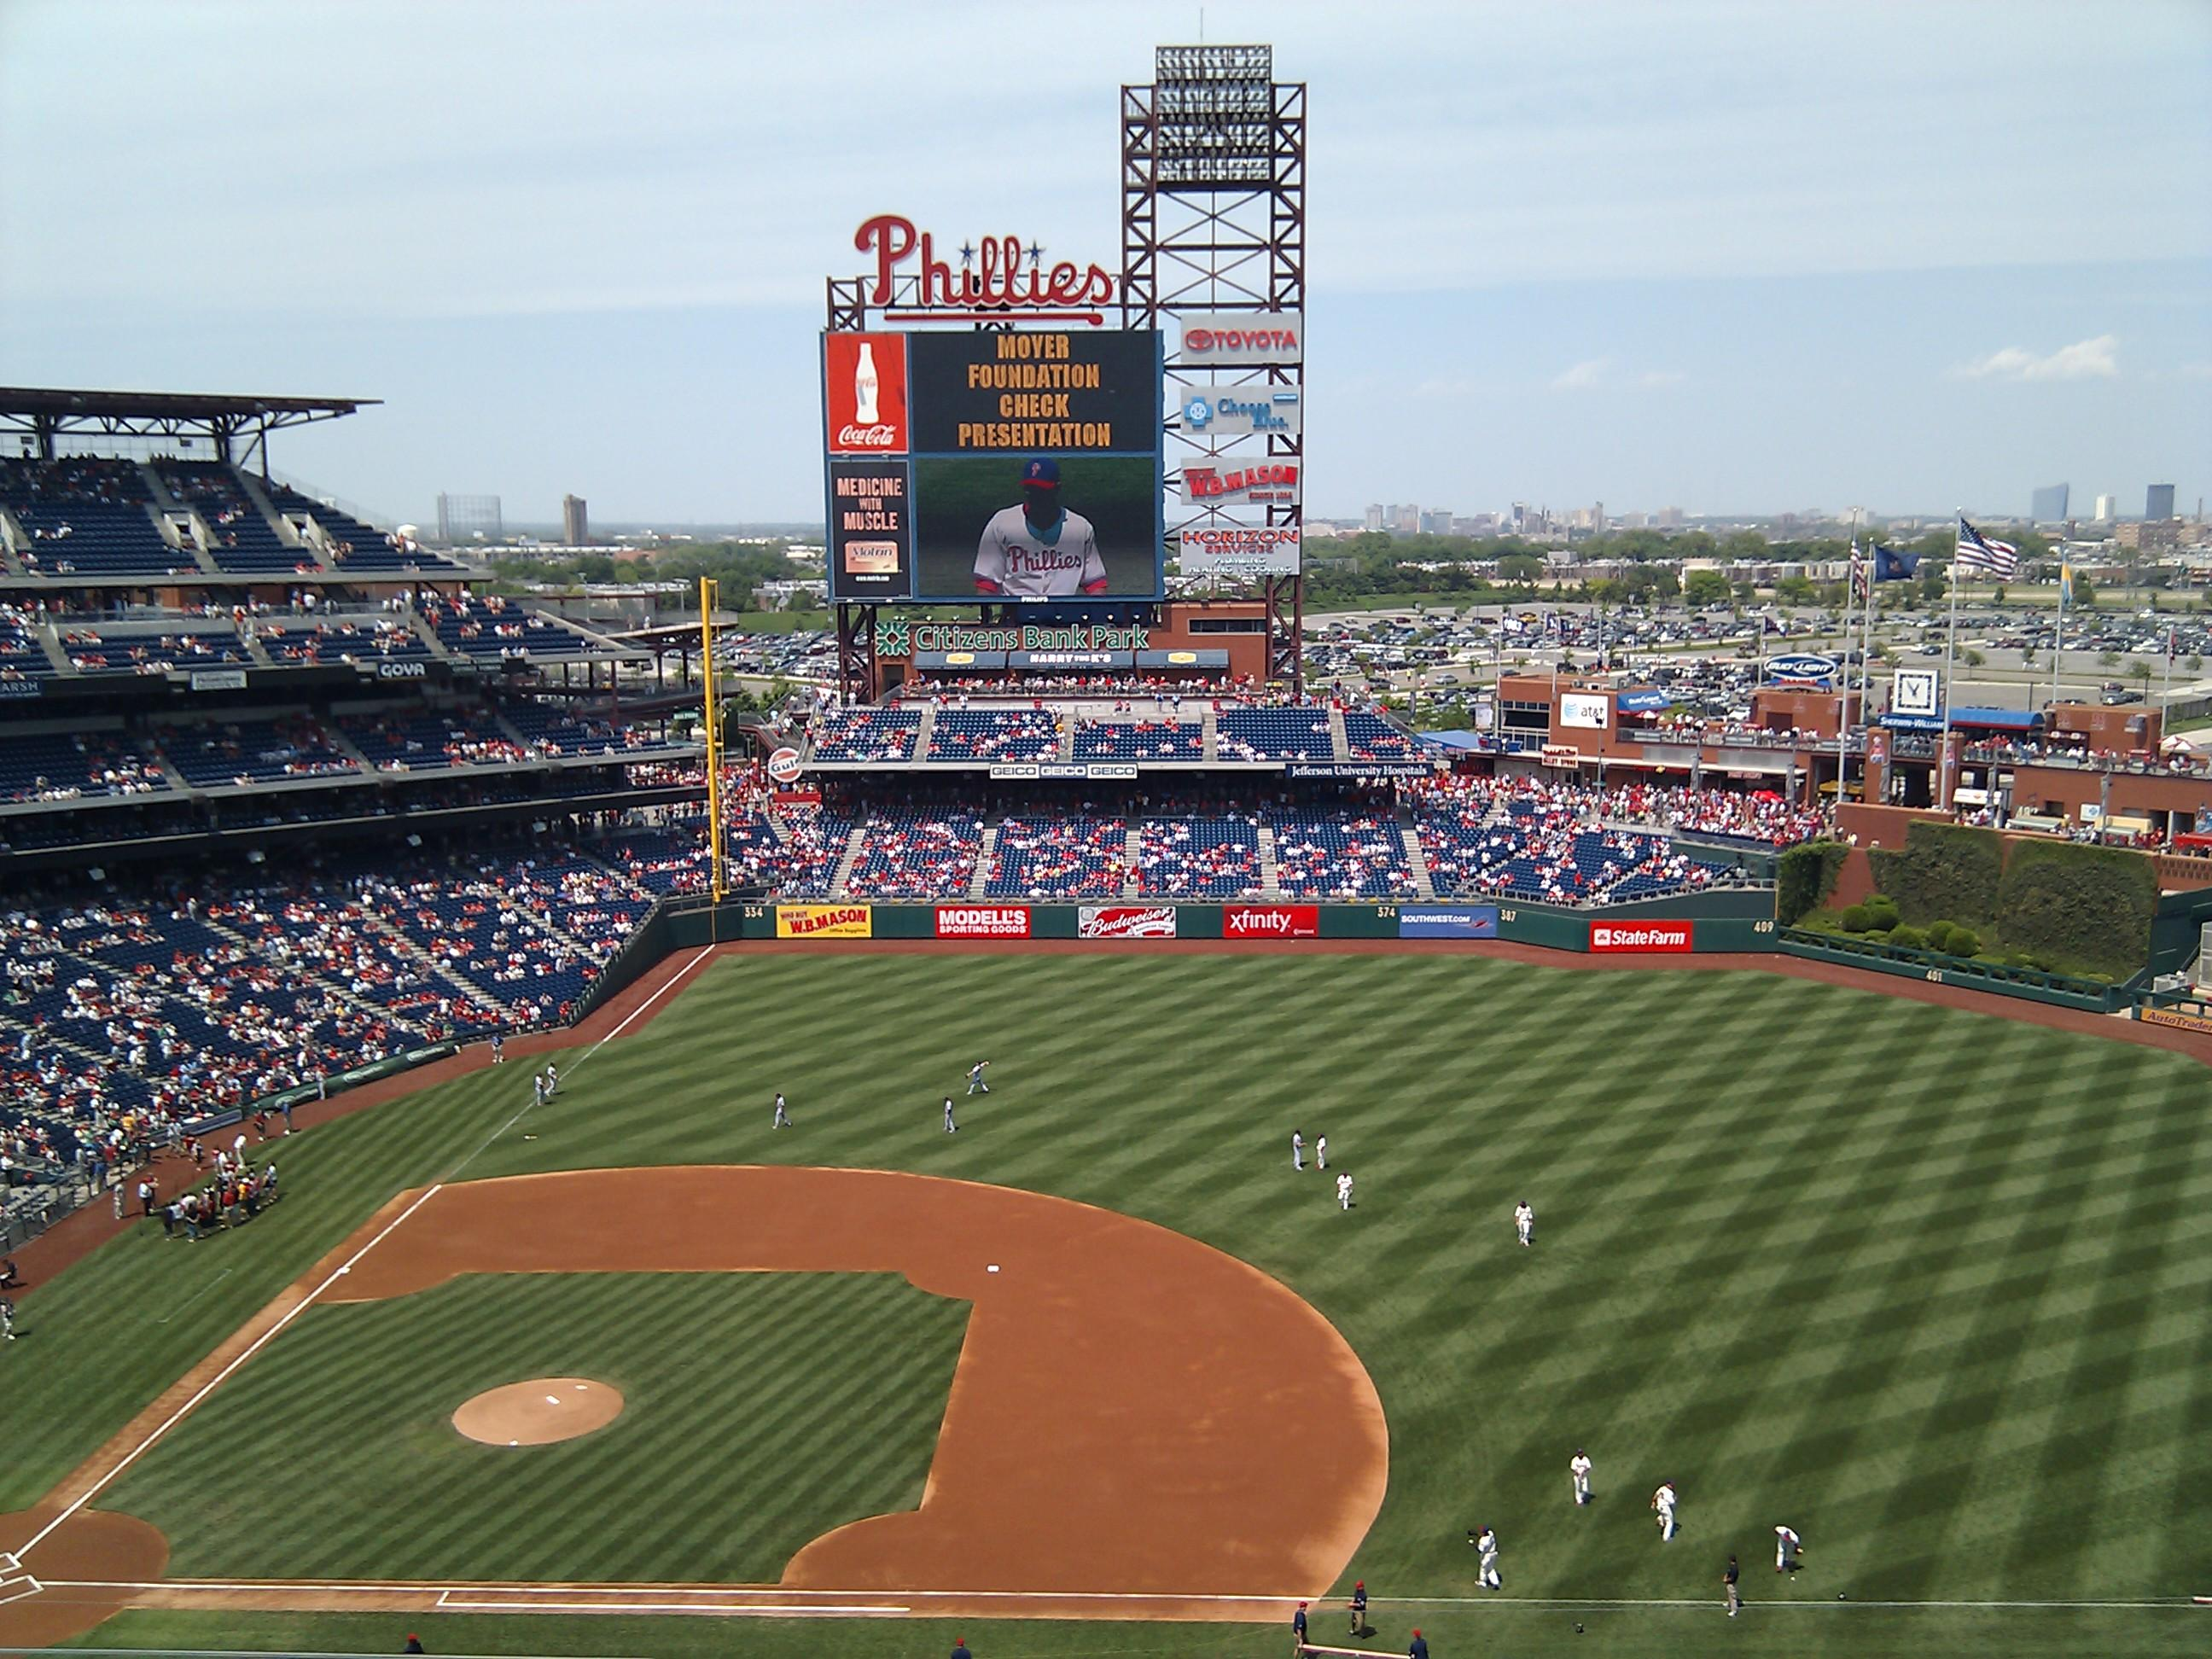 Citizens Bank Park Section 414 Row 5 Seat 16